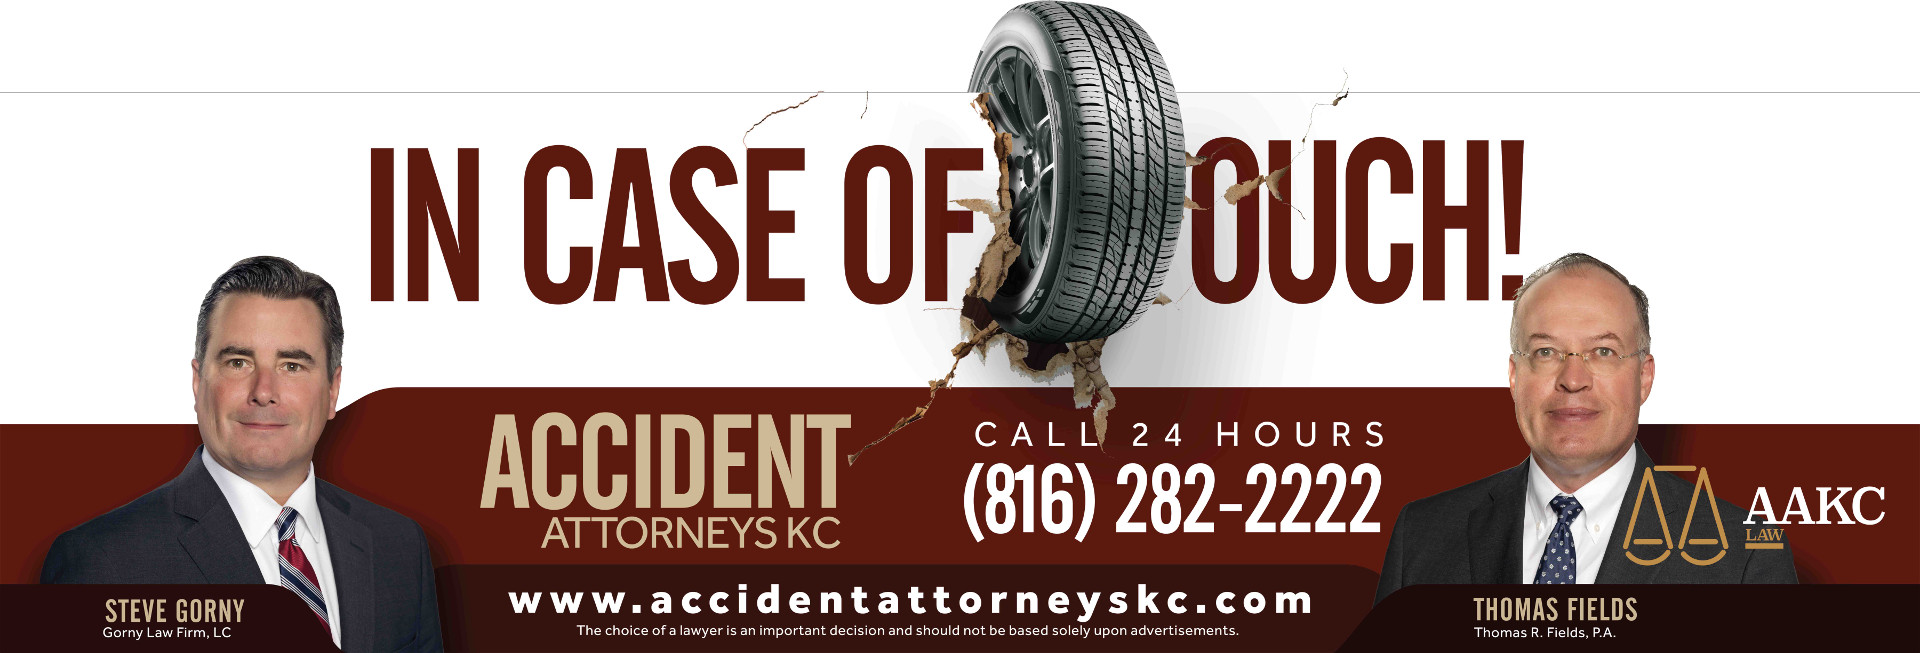 Accident Attorneys of Kansas City Banner